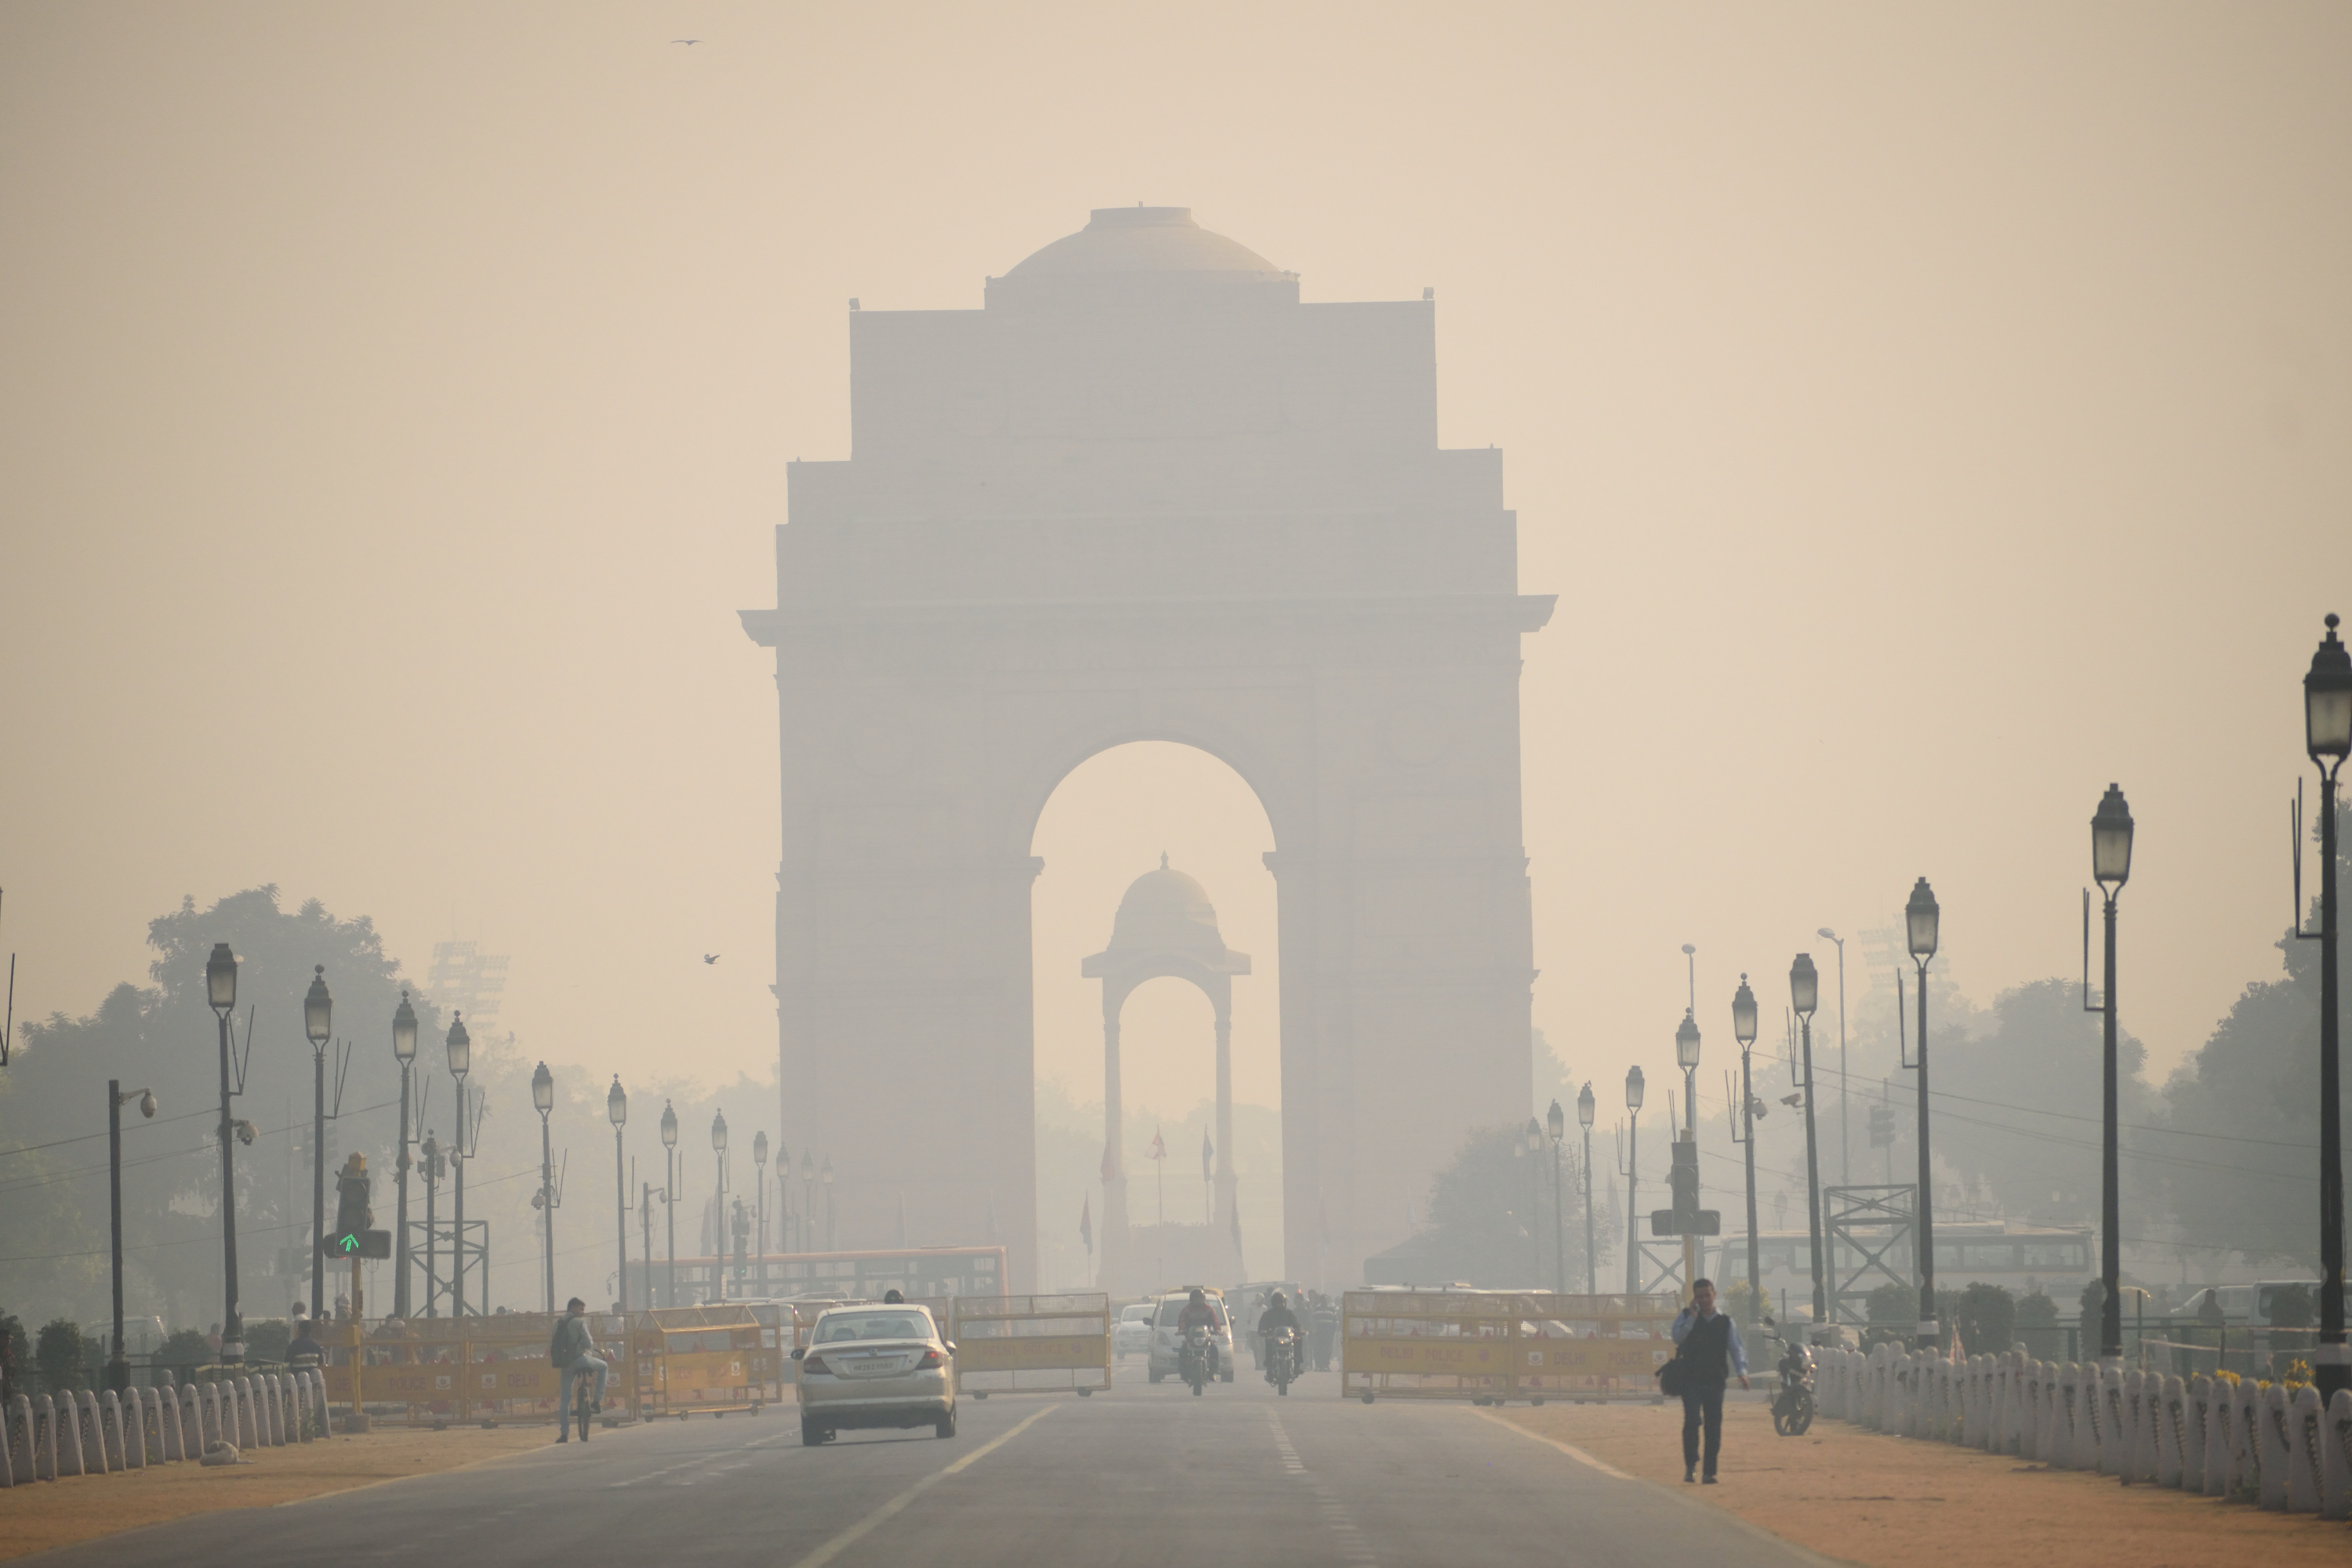 Air pollution levels were too high to be measured in Delhi this week, and the worst part of the year for air quality is still months away.